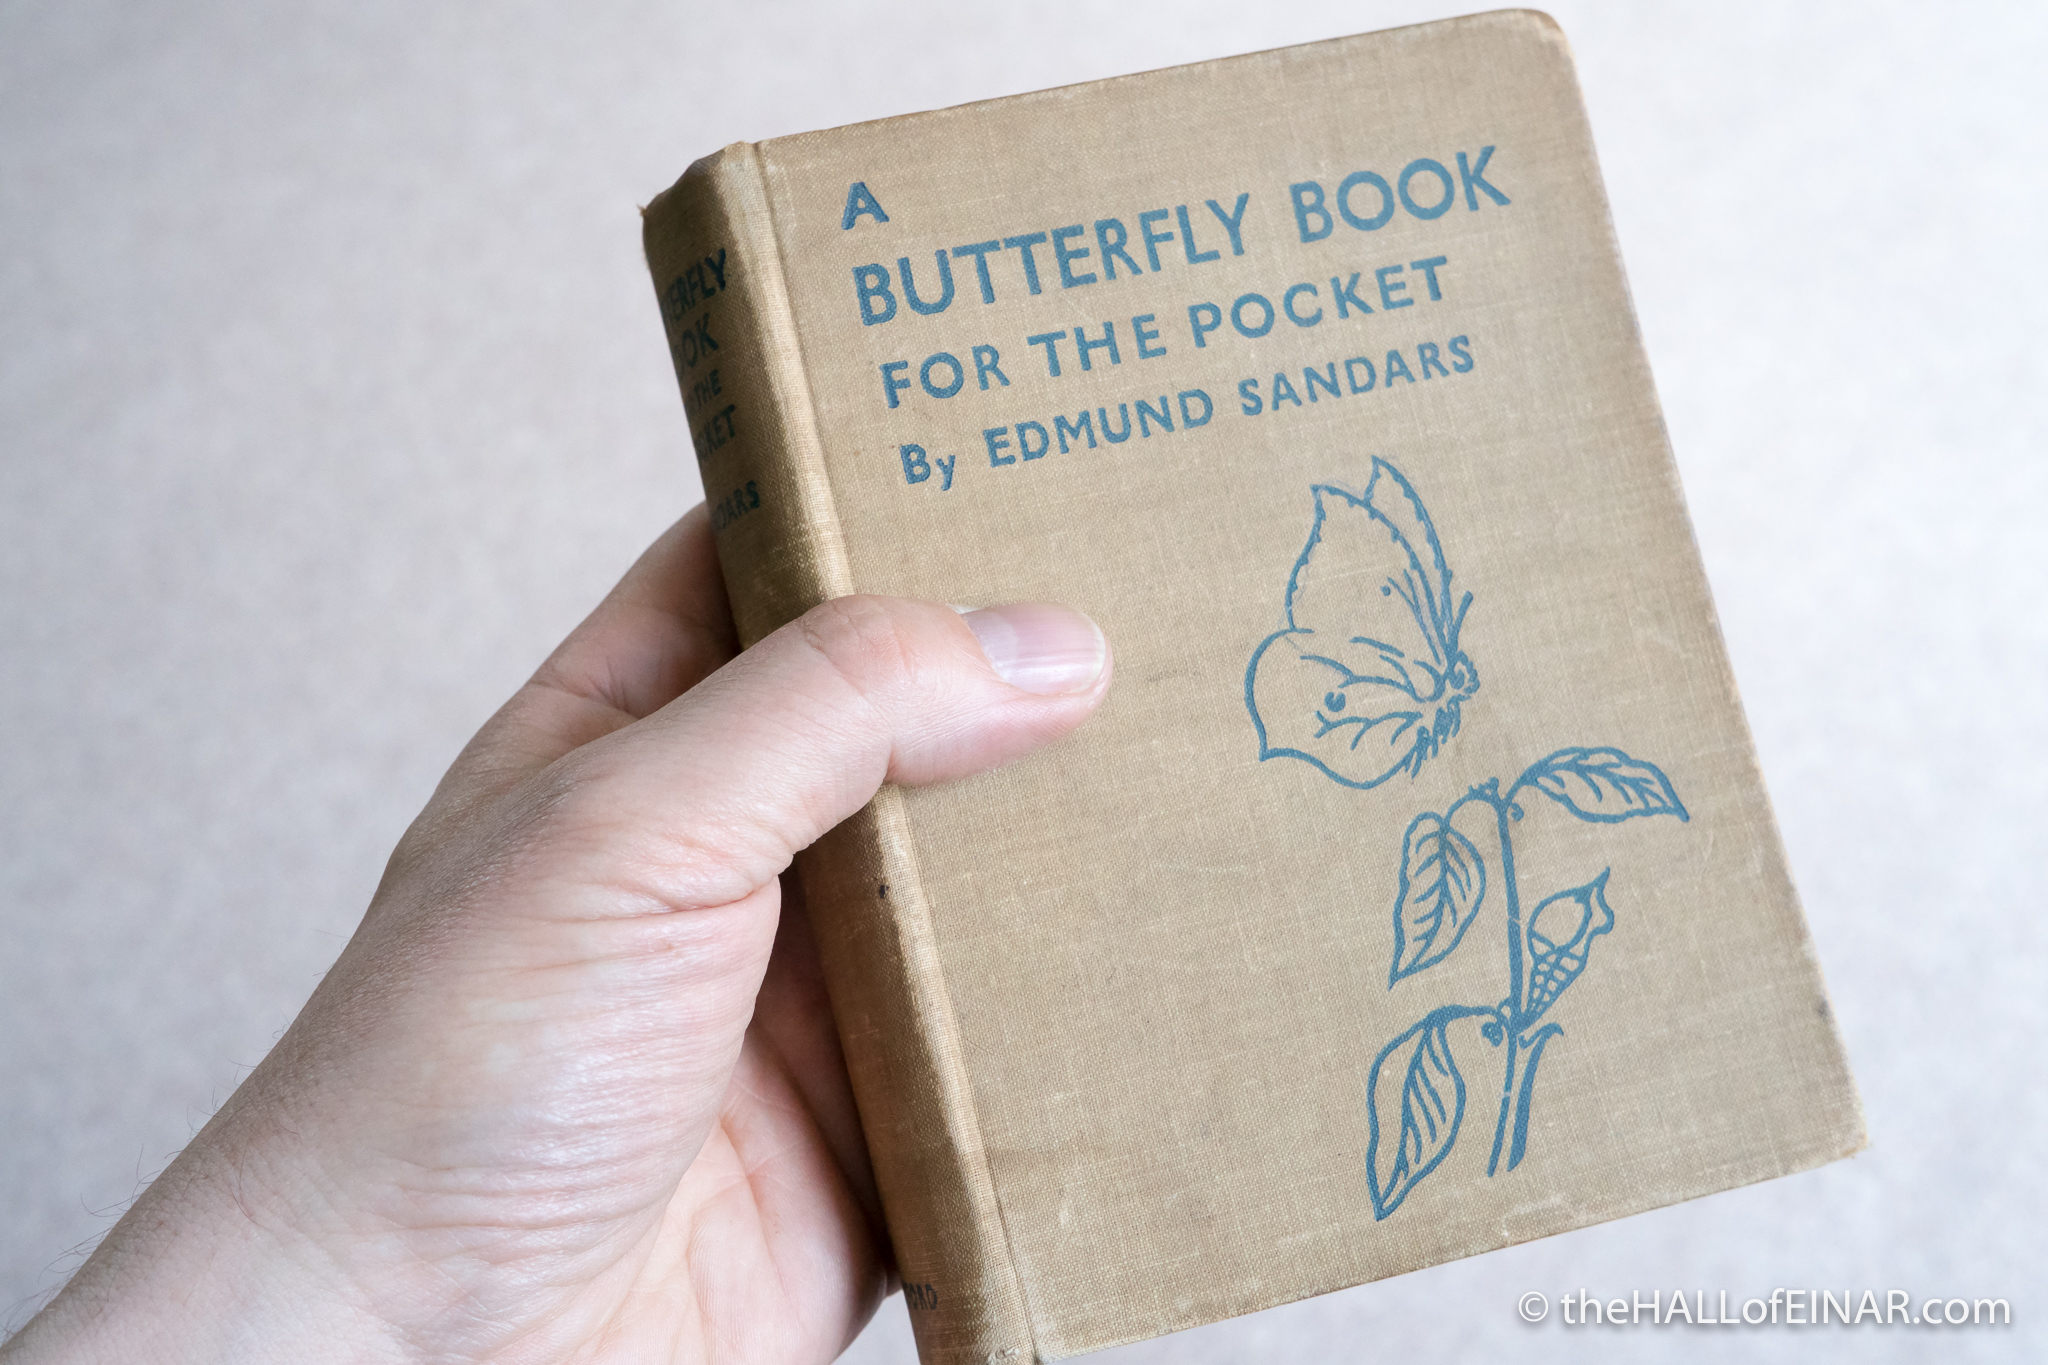 A Butterfly Book - Edmund Sandars - The Hall of Einar